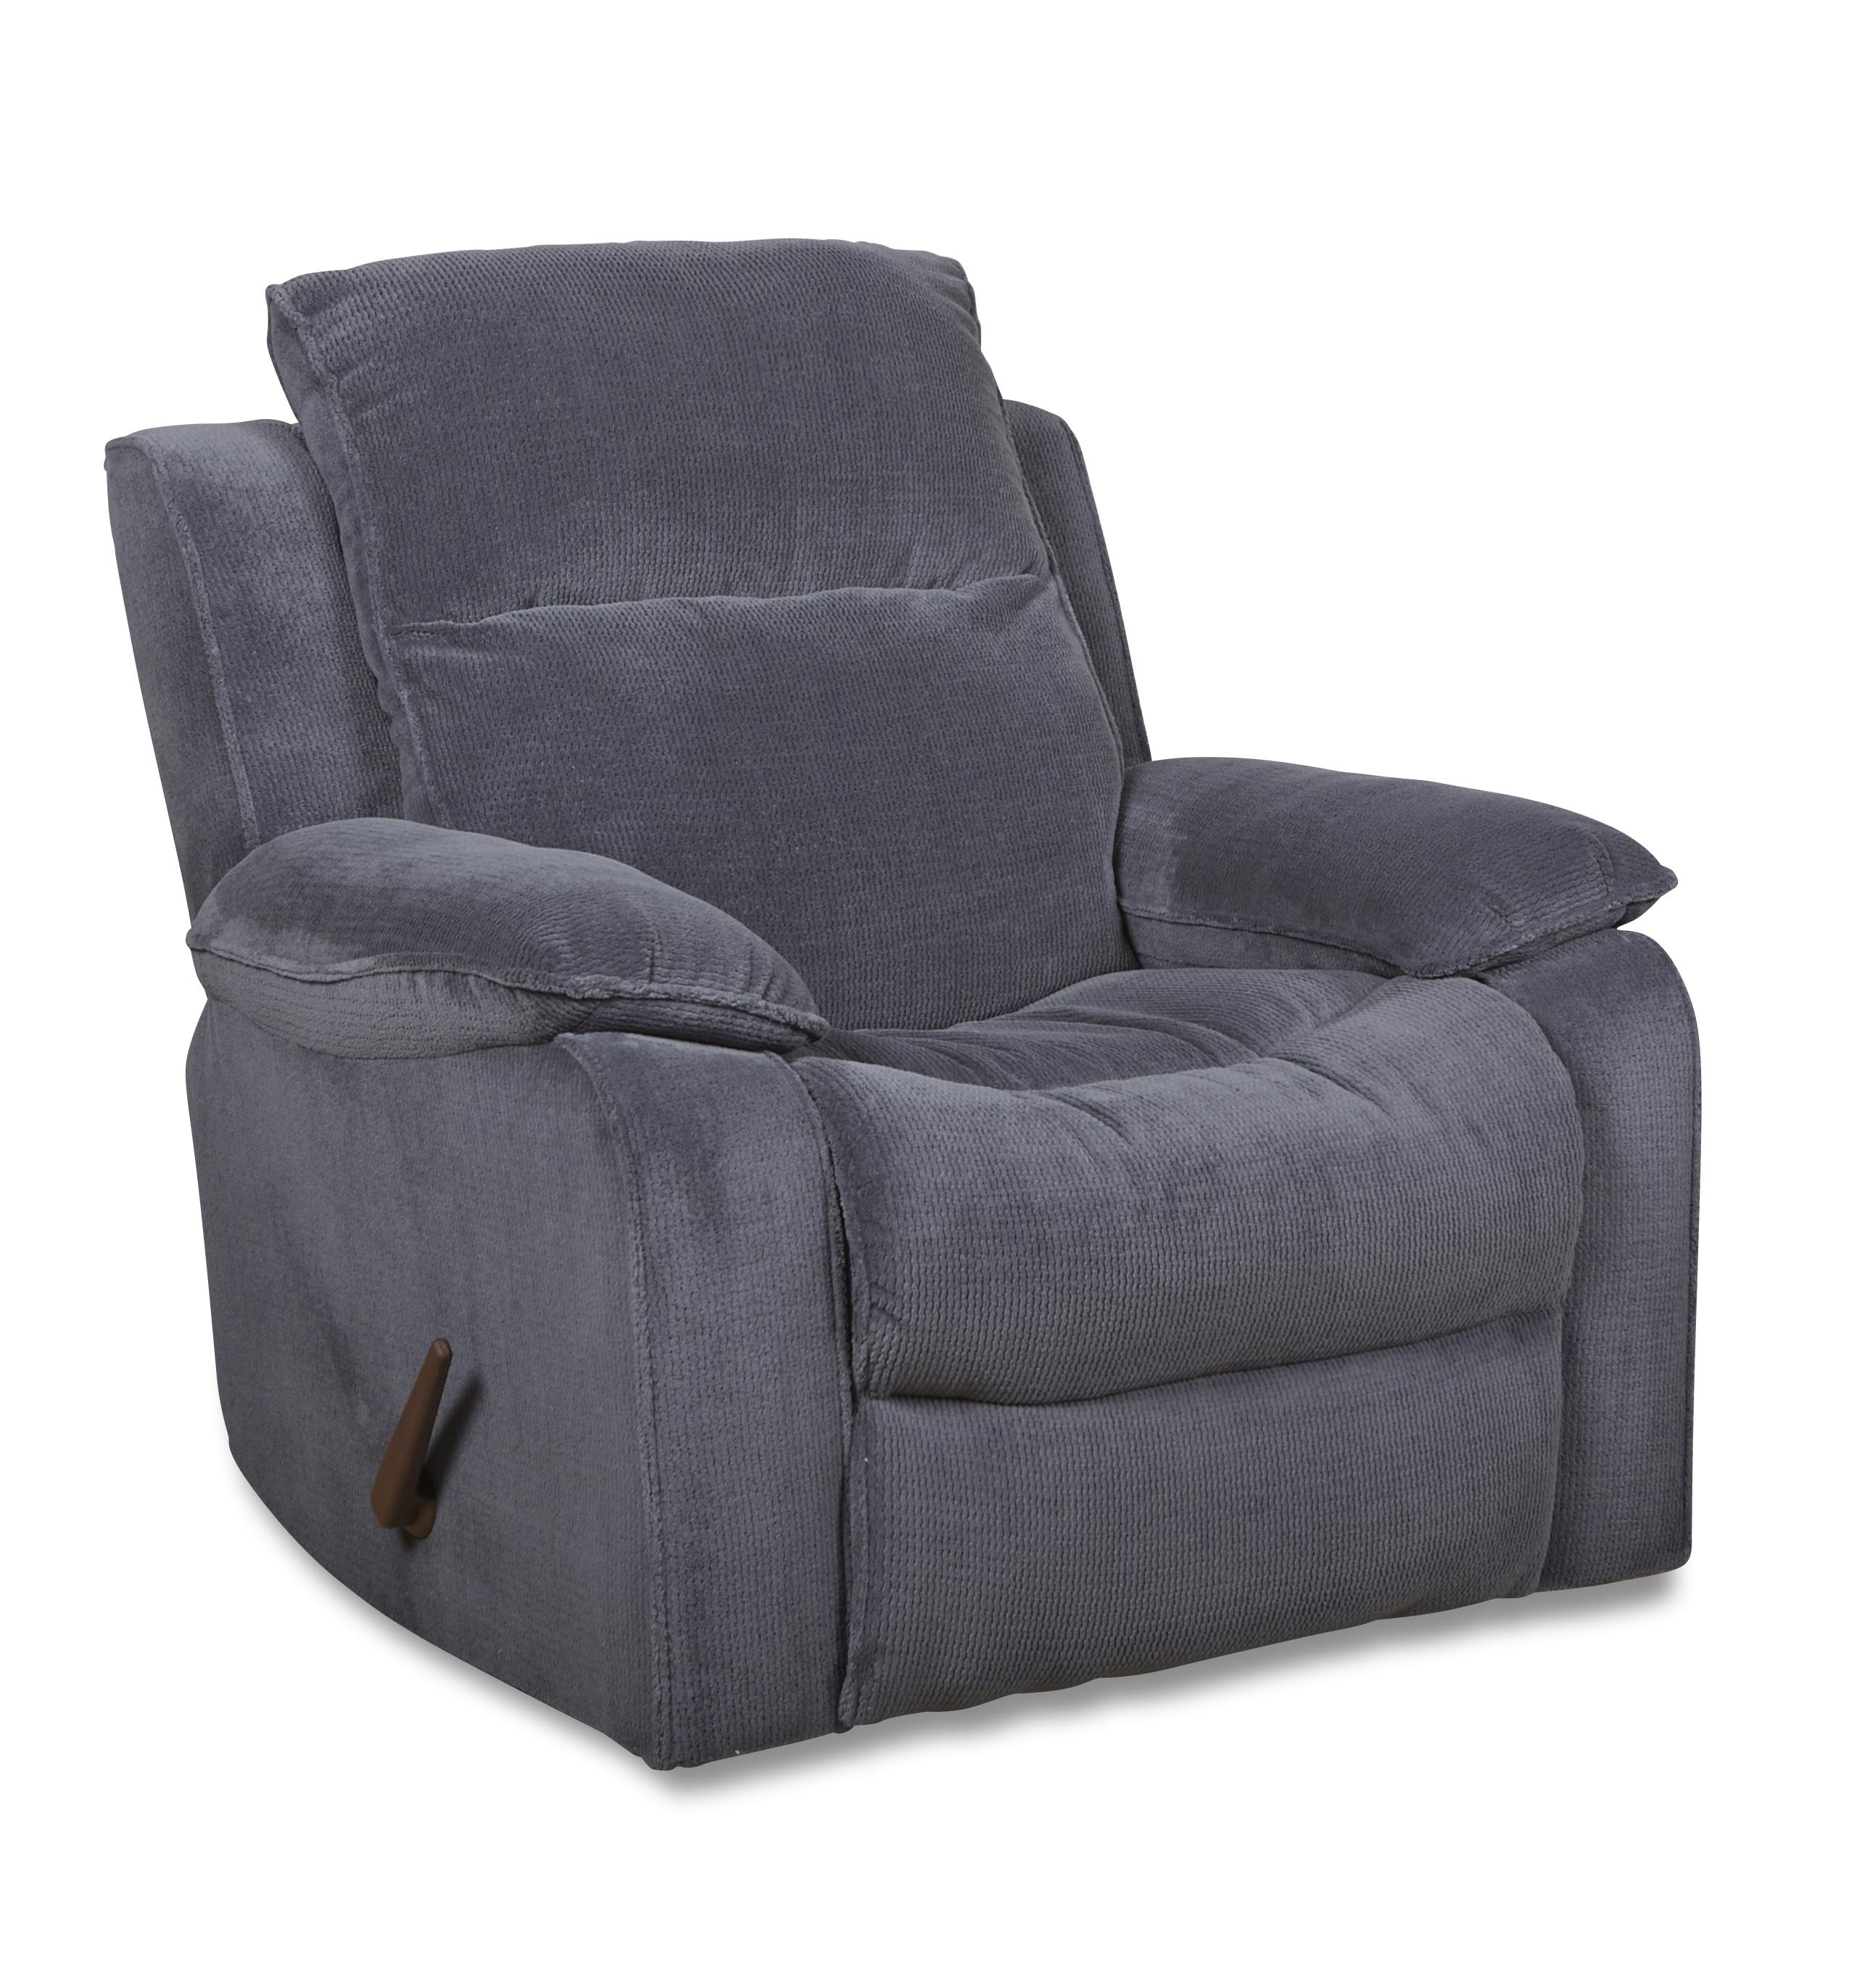 Casual Swivel Rocking Reclining Chair With Bucket Seat And